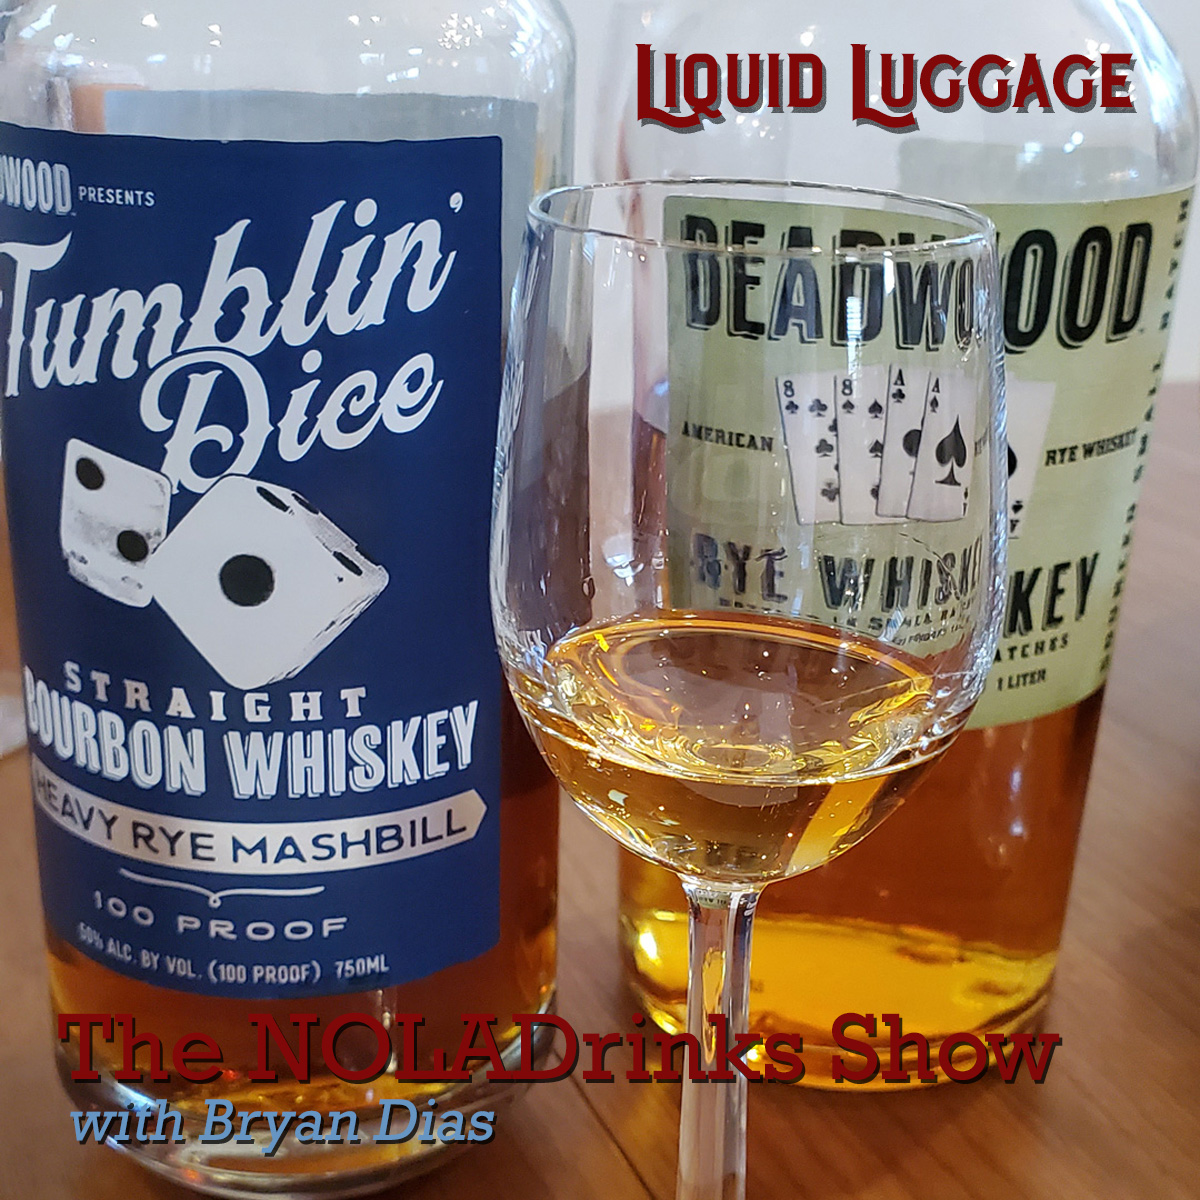 NOLADrinks Show – Liquid Luggage #2 featuring Deadwood Rye Whiskey, Deadwood Tumblin' Dice high-rye bourbon, and By The Dutch Old Genever. Presented by Phil Minissale of PM Brokerage of New Orleans.